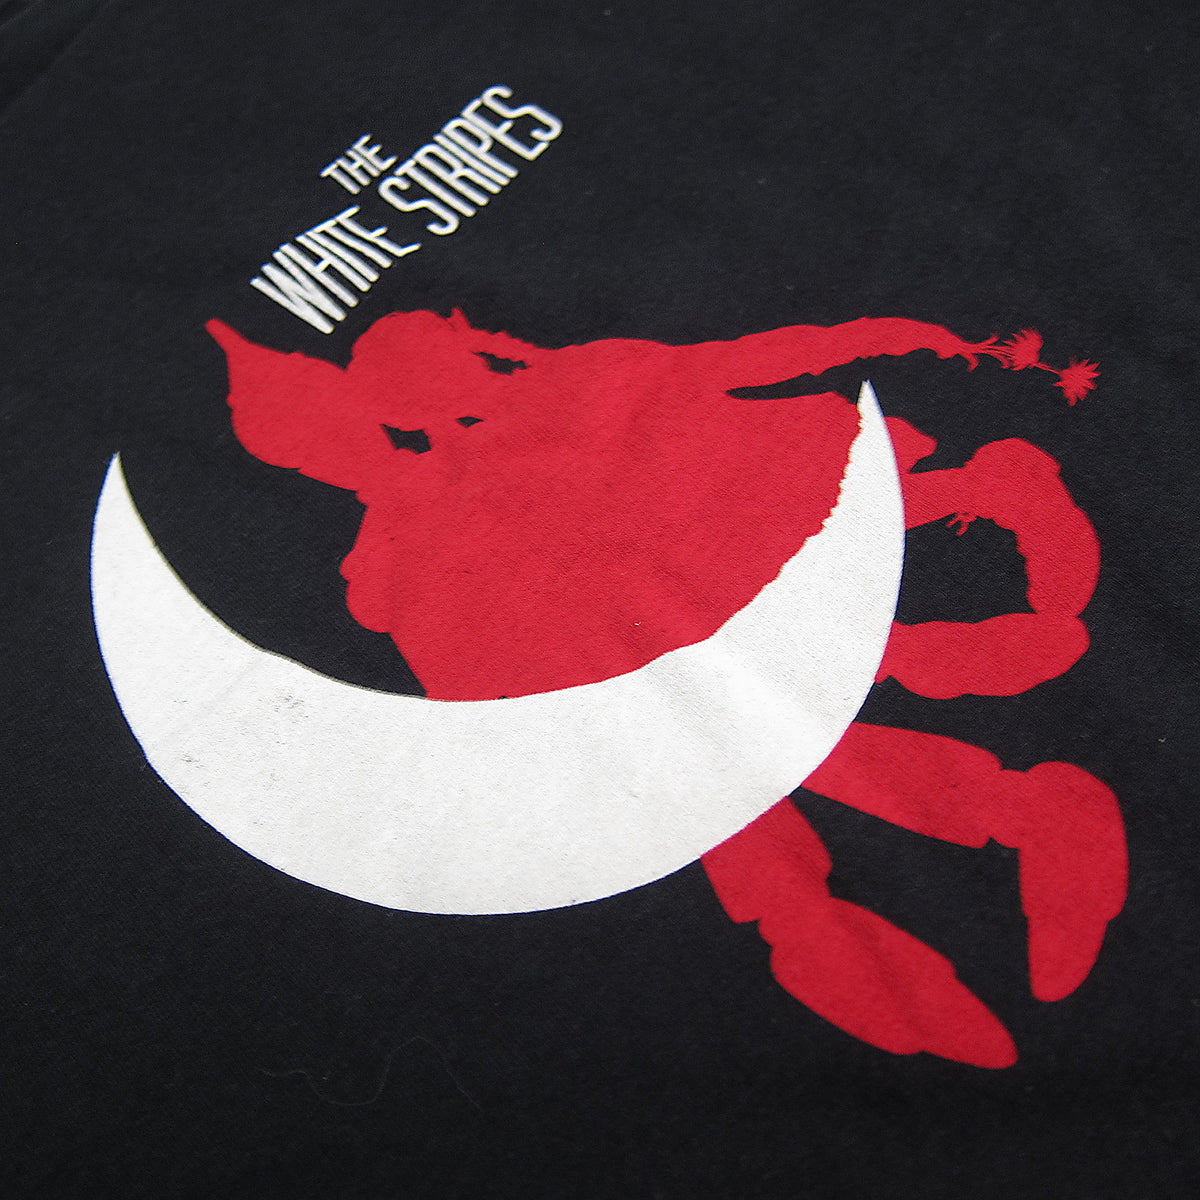 The White Stripes: Paper Moon Shirt - Black